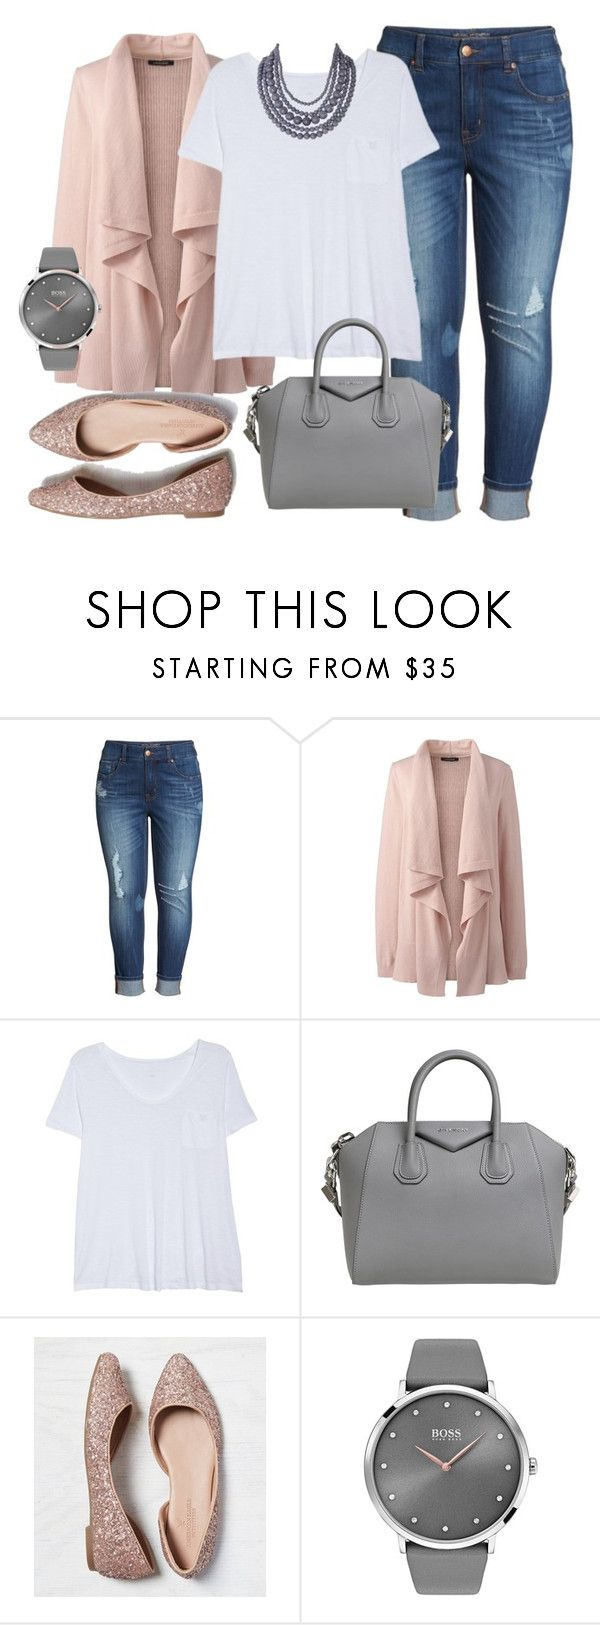 """""""Blush and Gray- Plus Size Outfit"""" by boswell0617 ❤ liked on Polyvore featuring Melissa McCarthy Seven7, Lands' End, Caslon, Givenchy, American Eagle Outfitters, BOSS Black, Humble Chic and plus size clothing"""